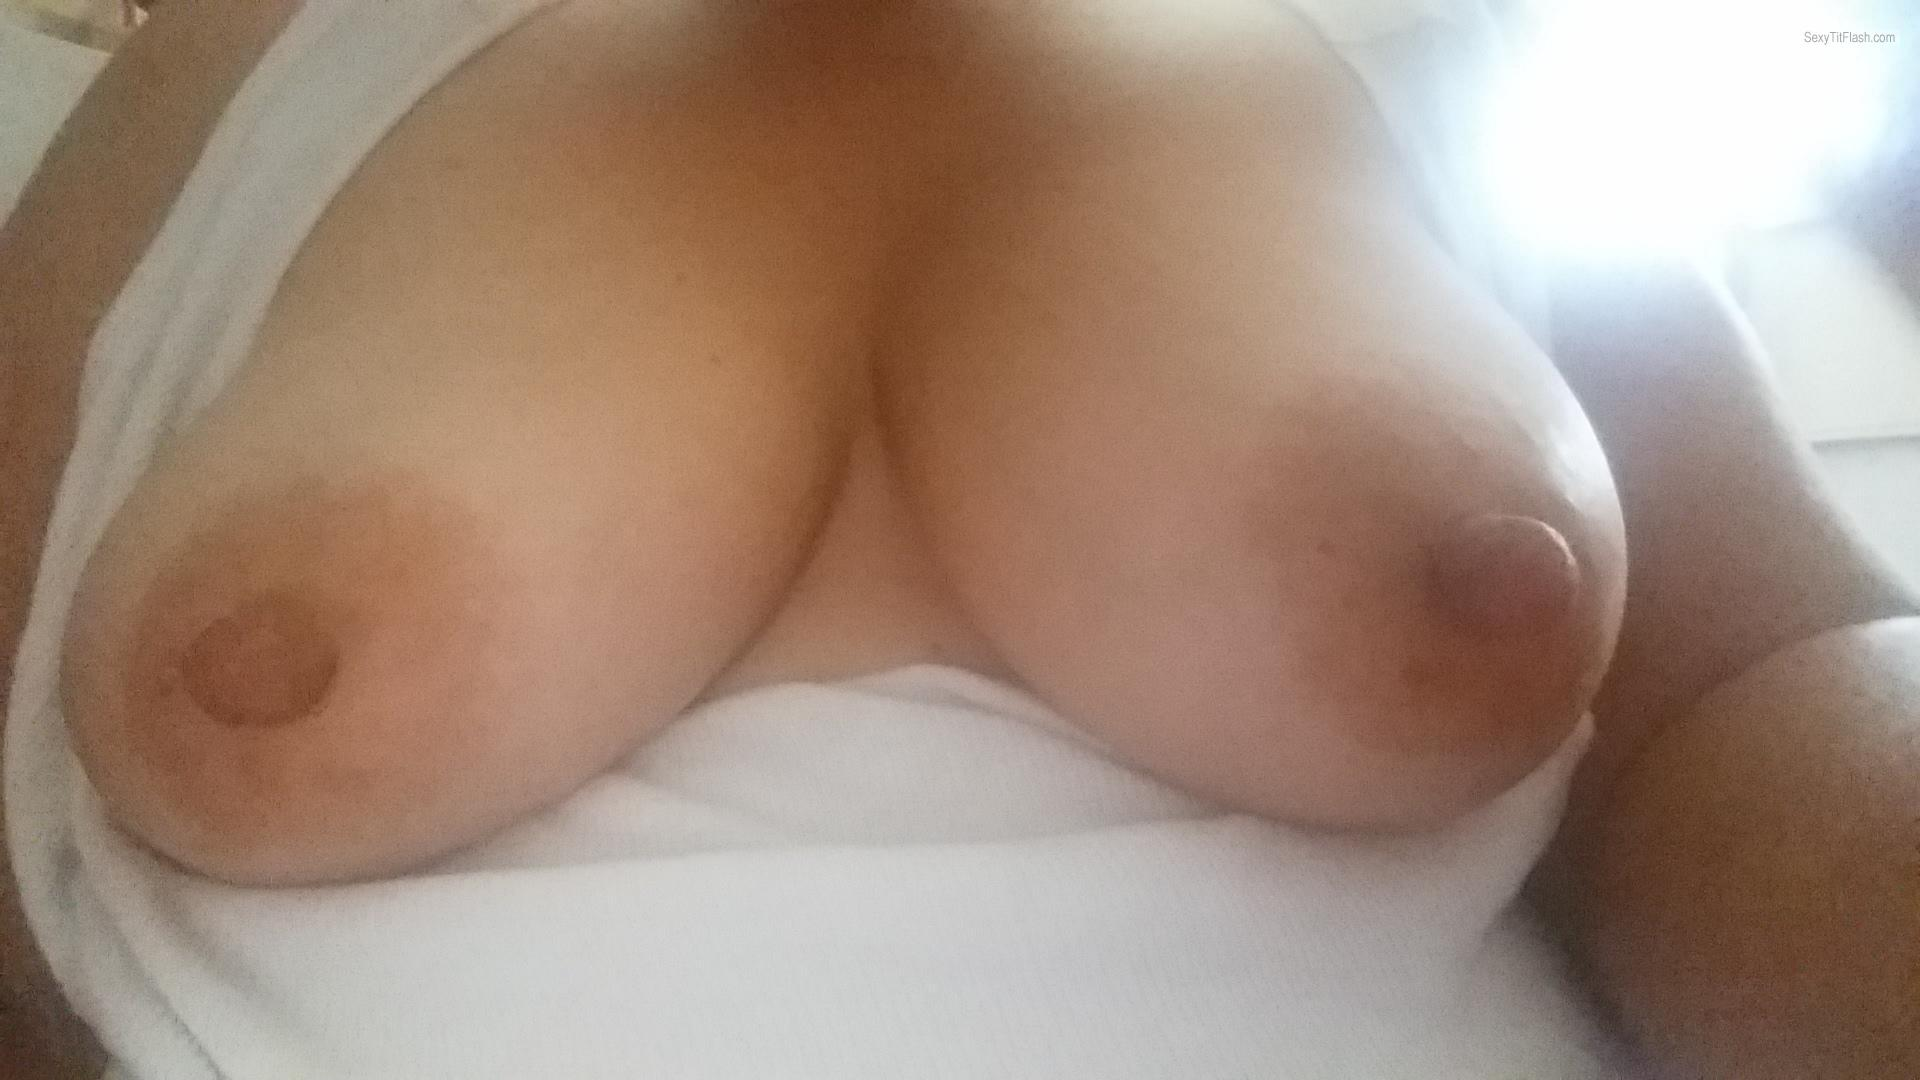 Tit Flash: Wife's Big Tits (Selfie) - Hotwife from United States